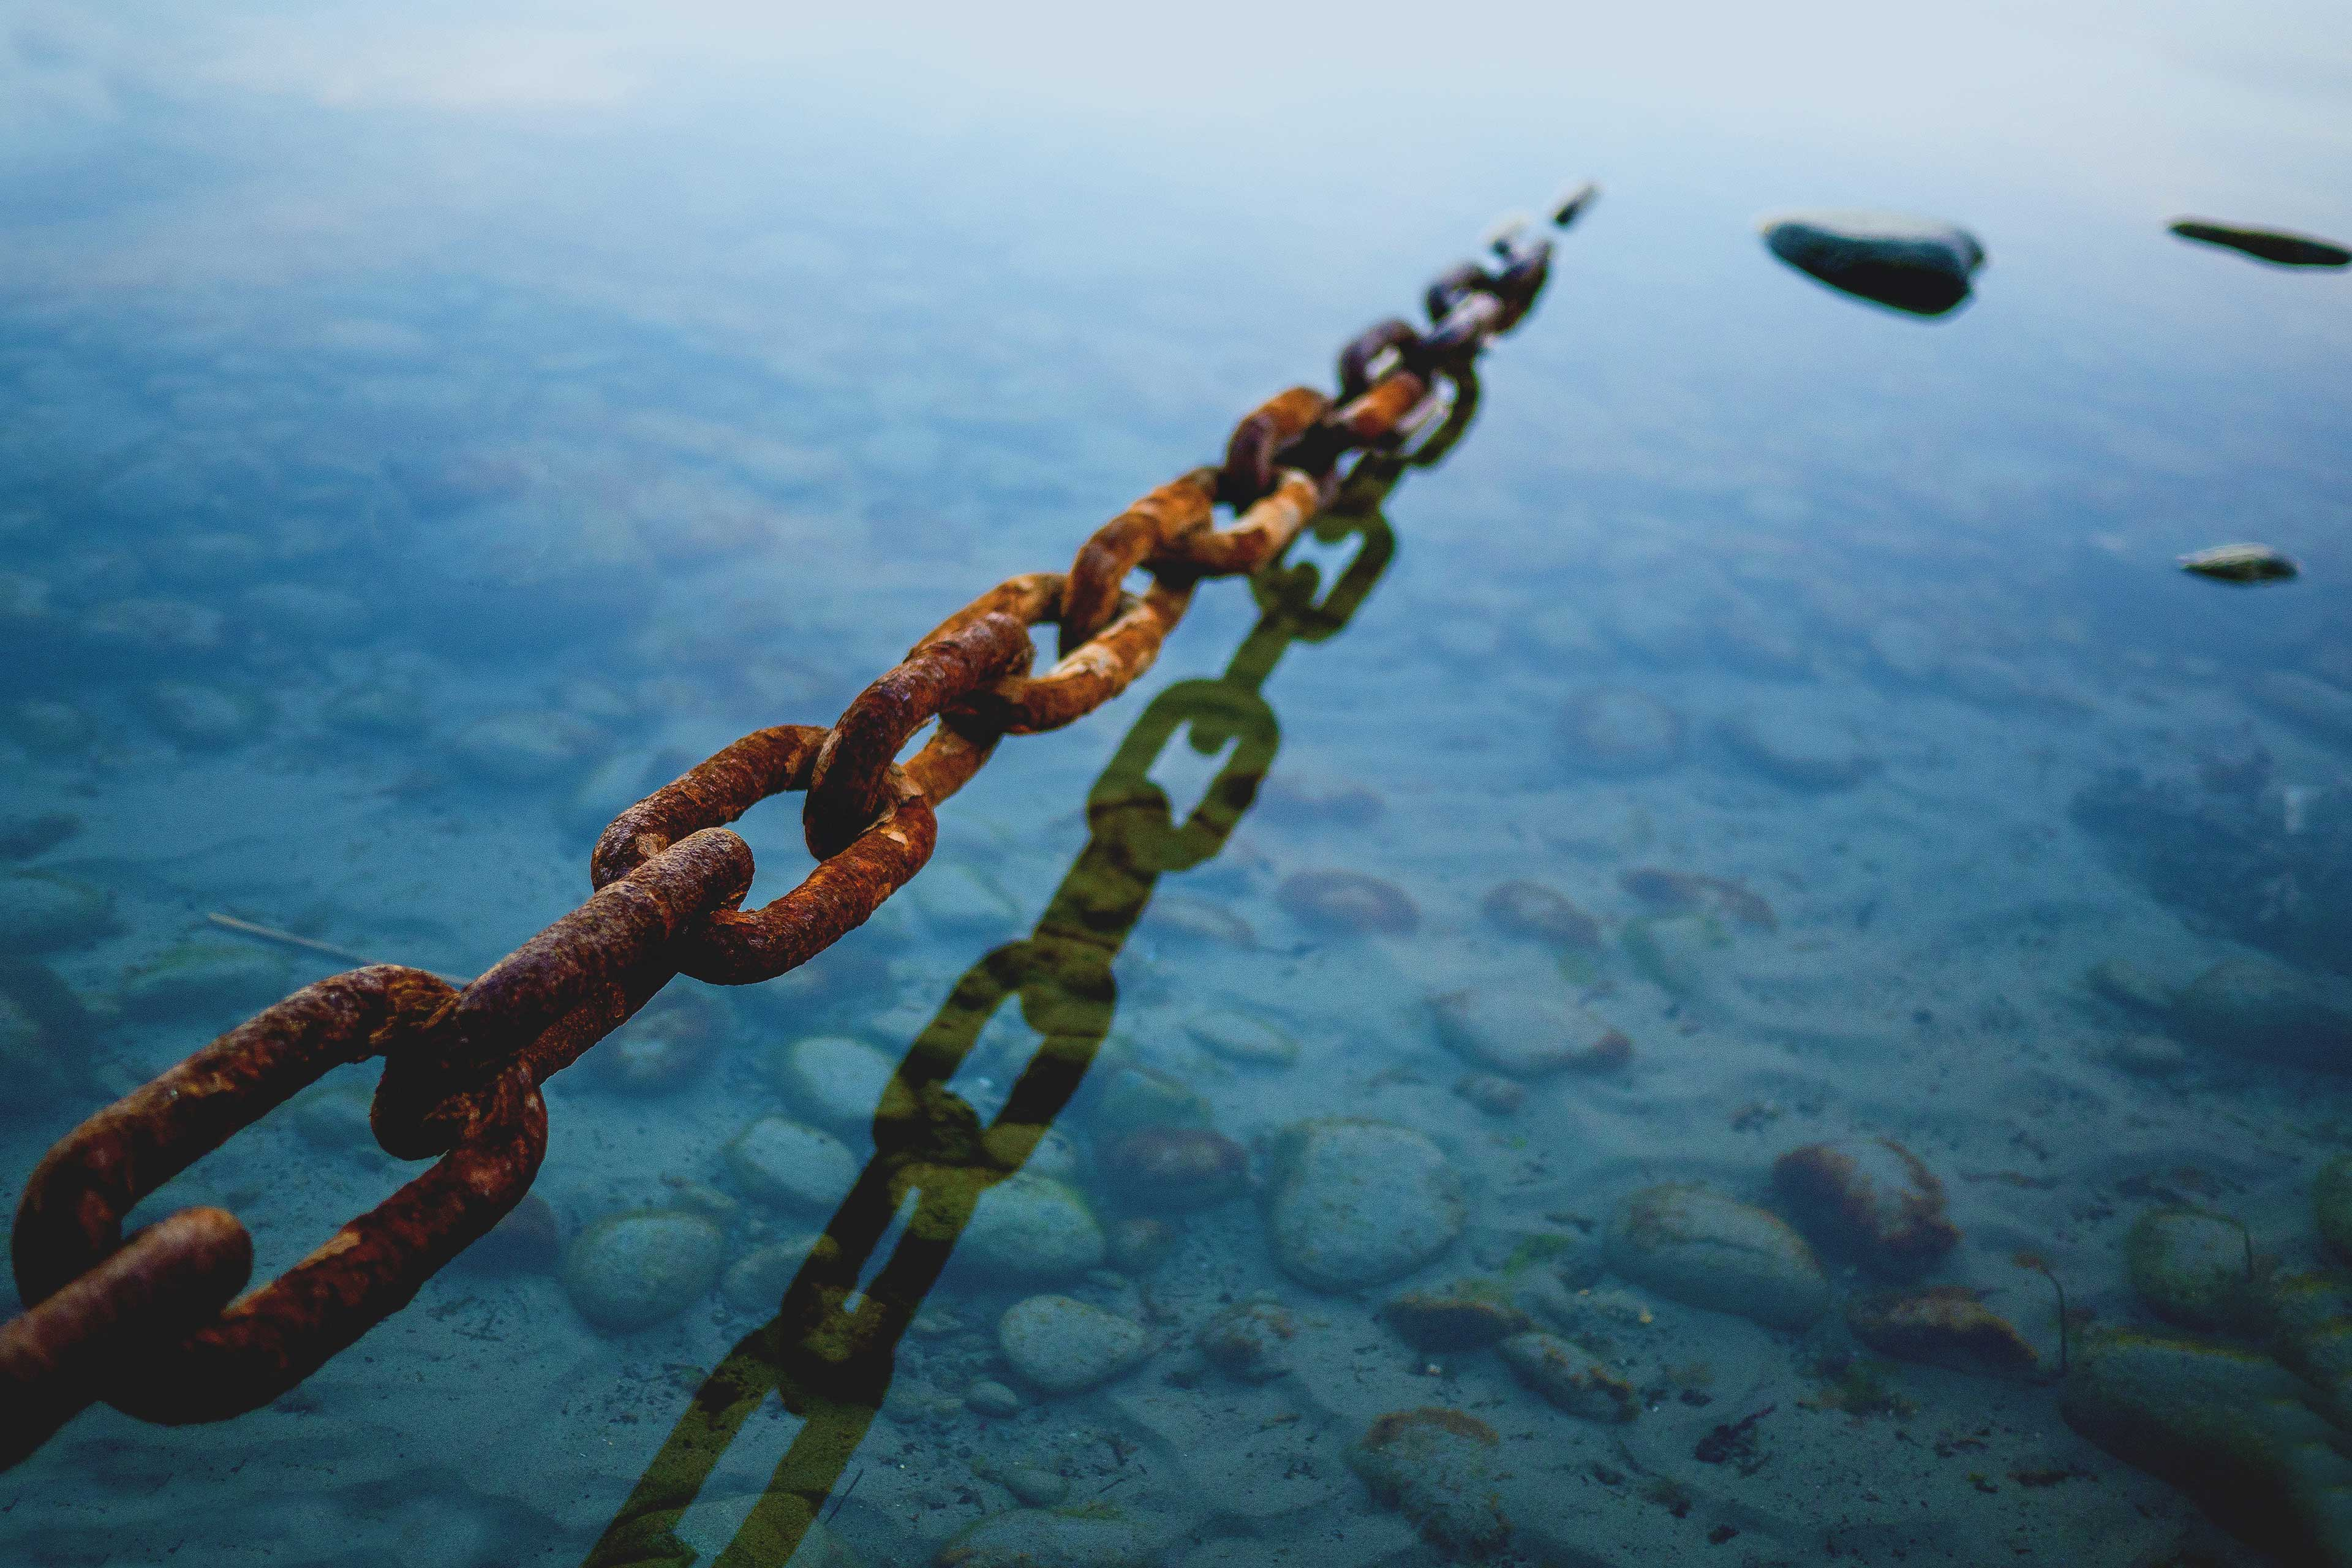 EY - Rusted chain anchored in the ocean